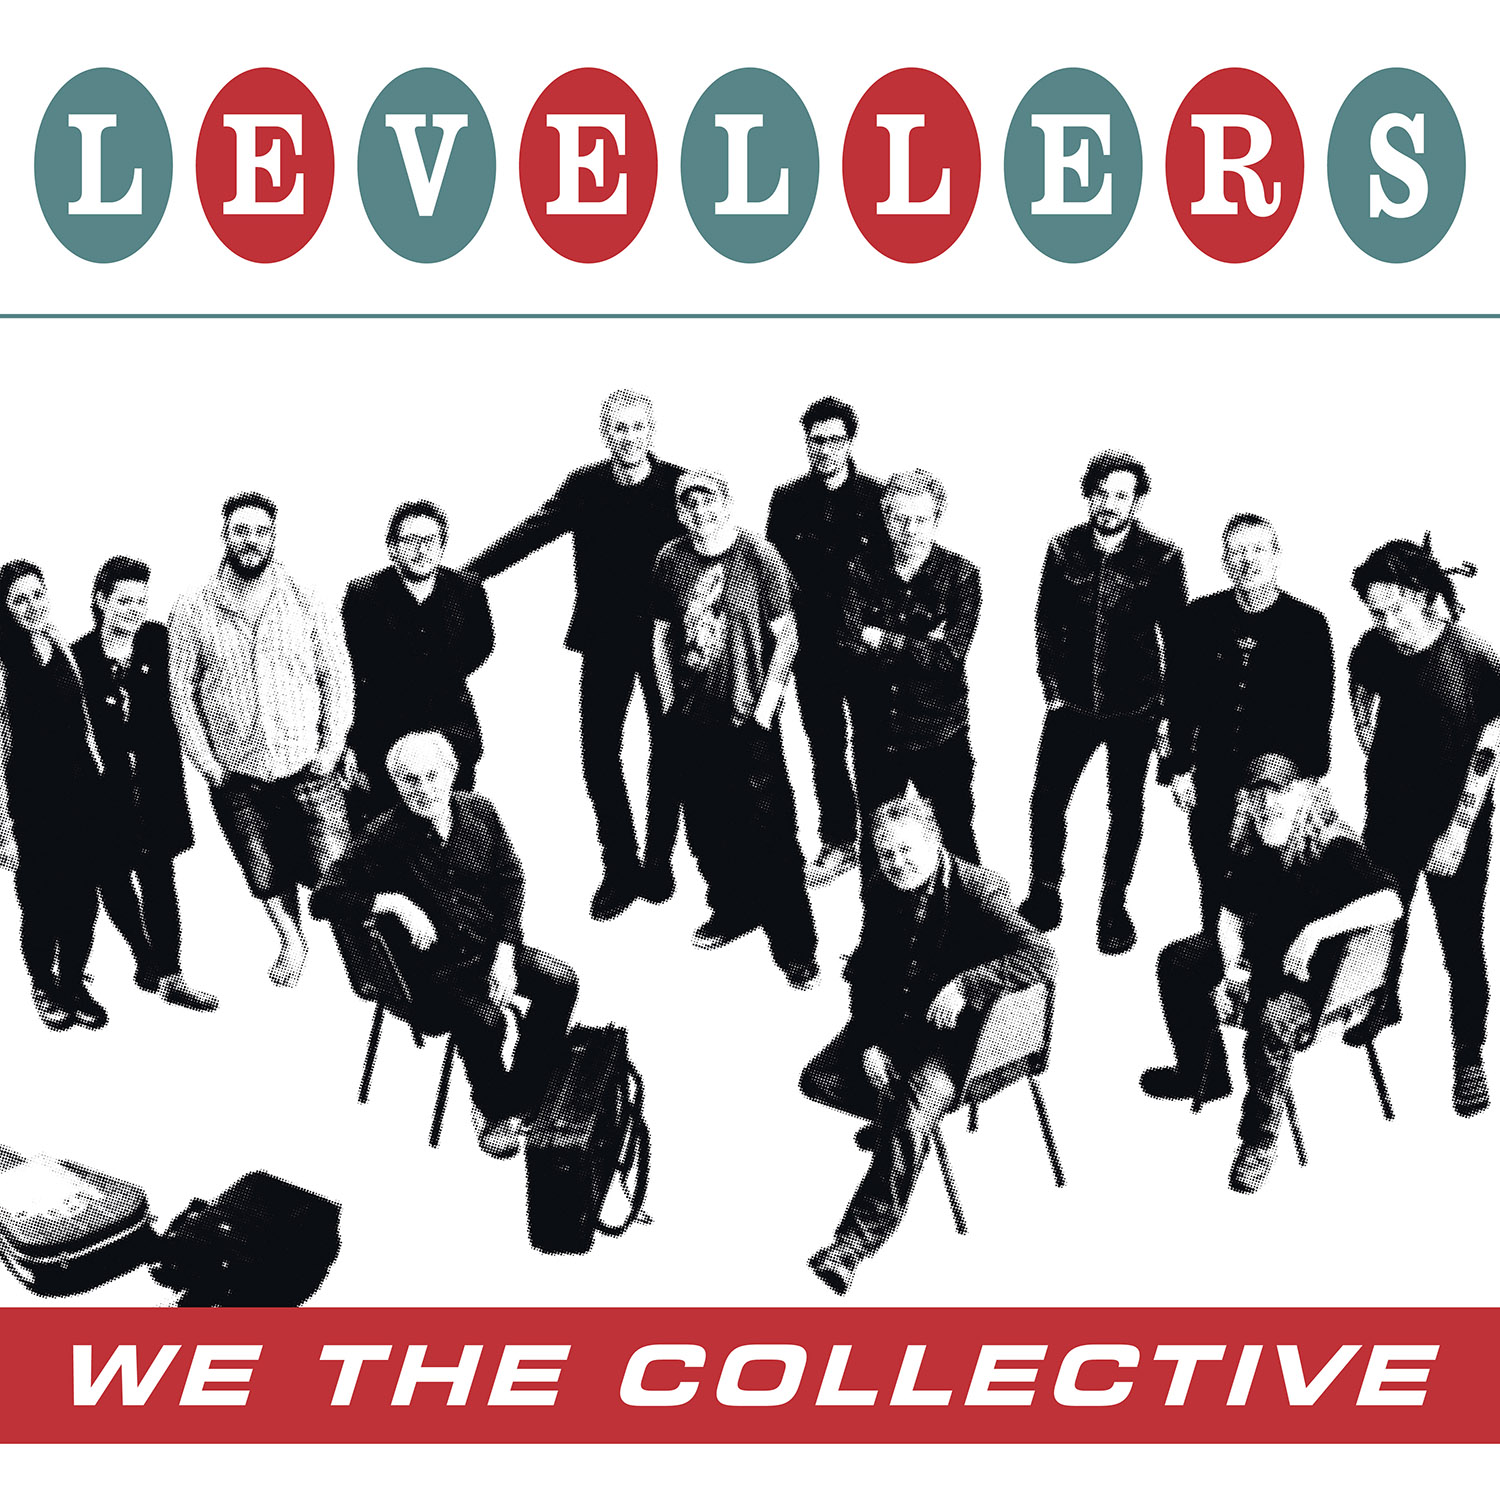 We The Collective - Levellers